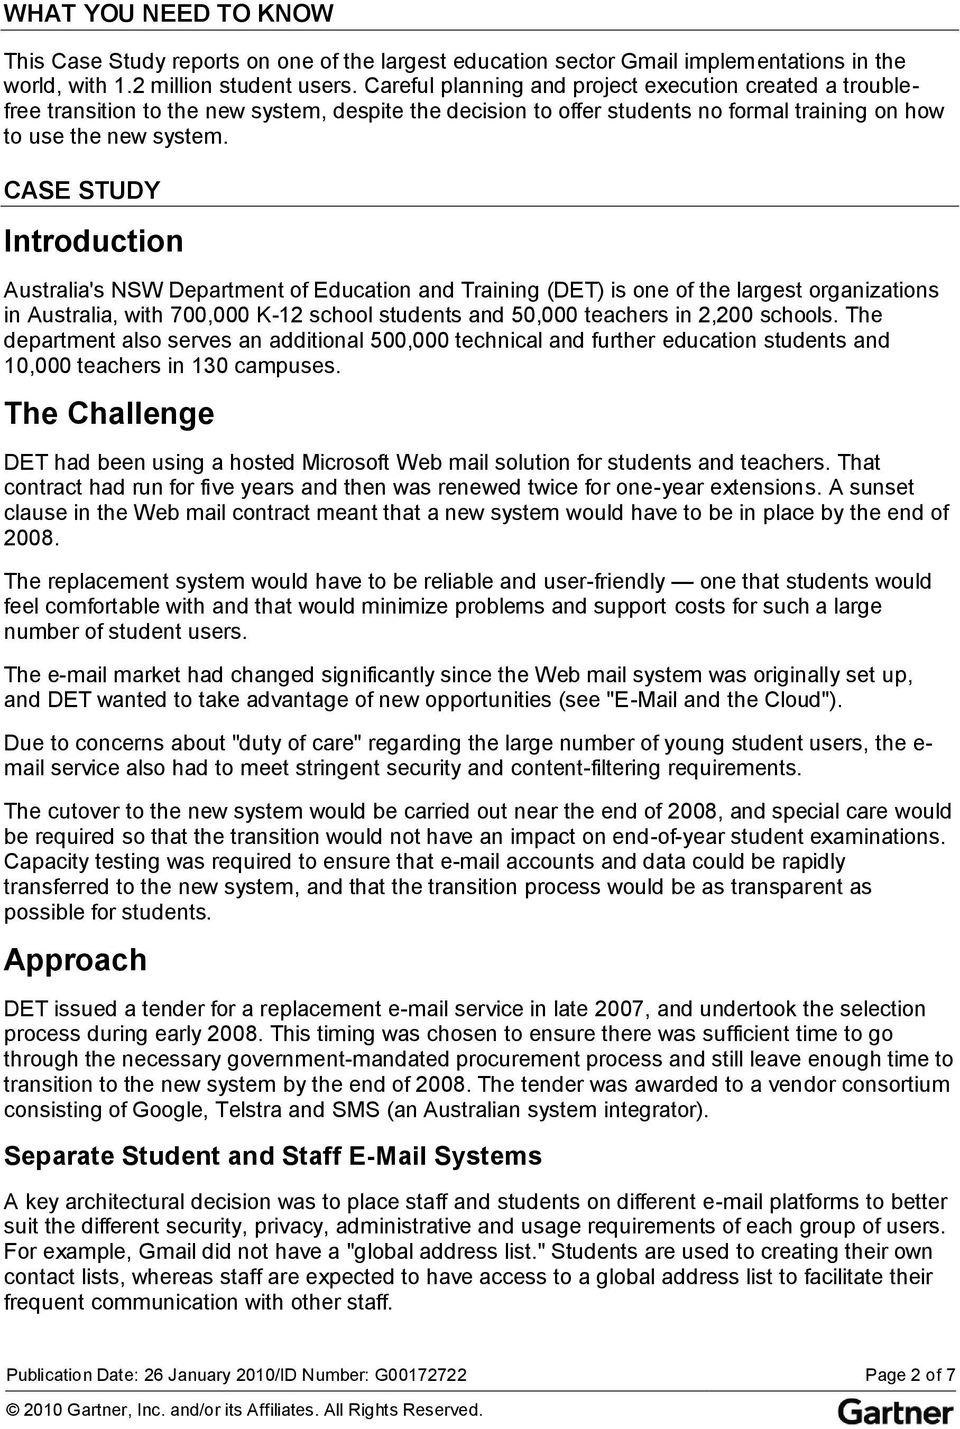 CASE STUDY Introduction Australia's NSW Department of Education and Training (DET) is one of the largest organizations in Australia, with 700,000 K-12 school students and 50,000 teachers in 2,200